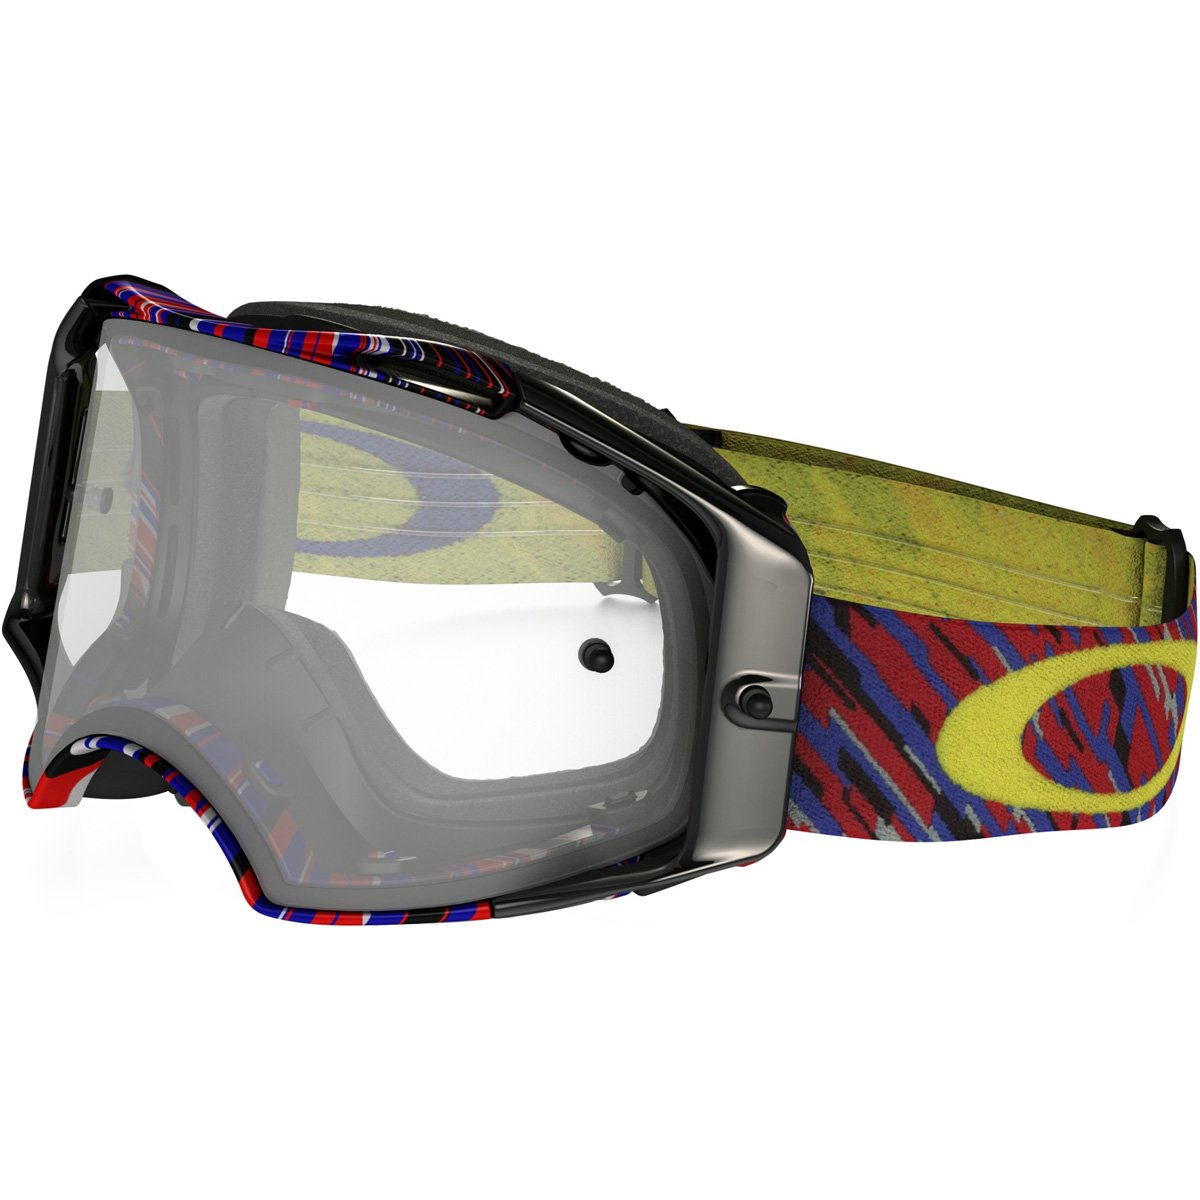 Oakley Airbrake MX Rain Of Terror Men's Dirt Motocross Motorcycle Goggles Eyewear - White/Clear / One Size Fits All